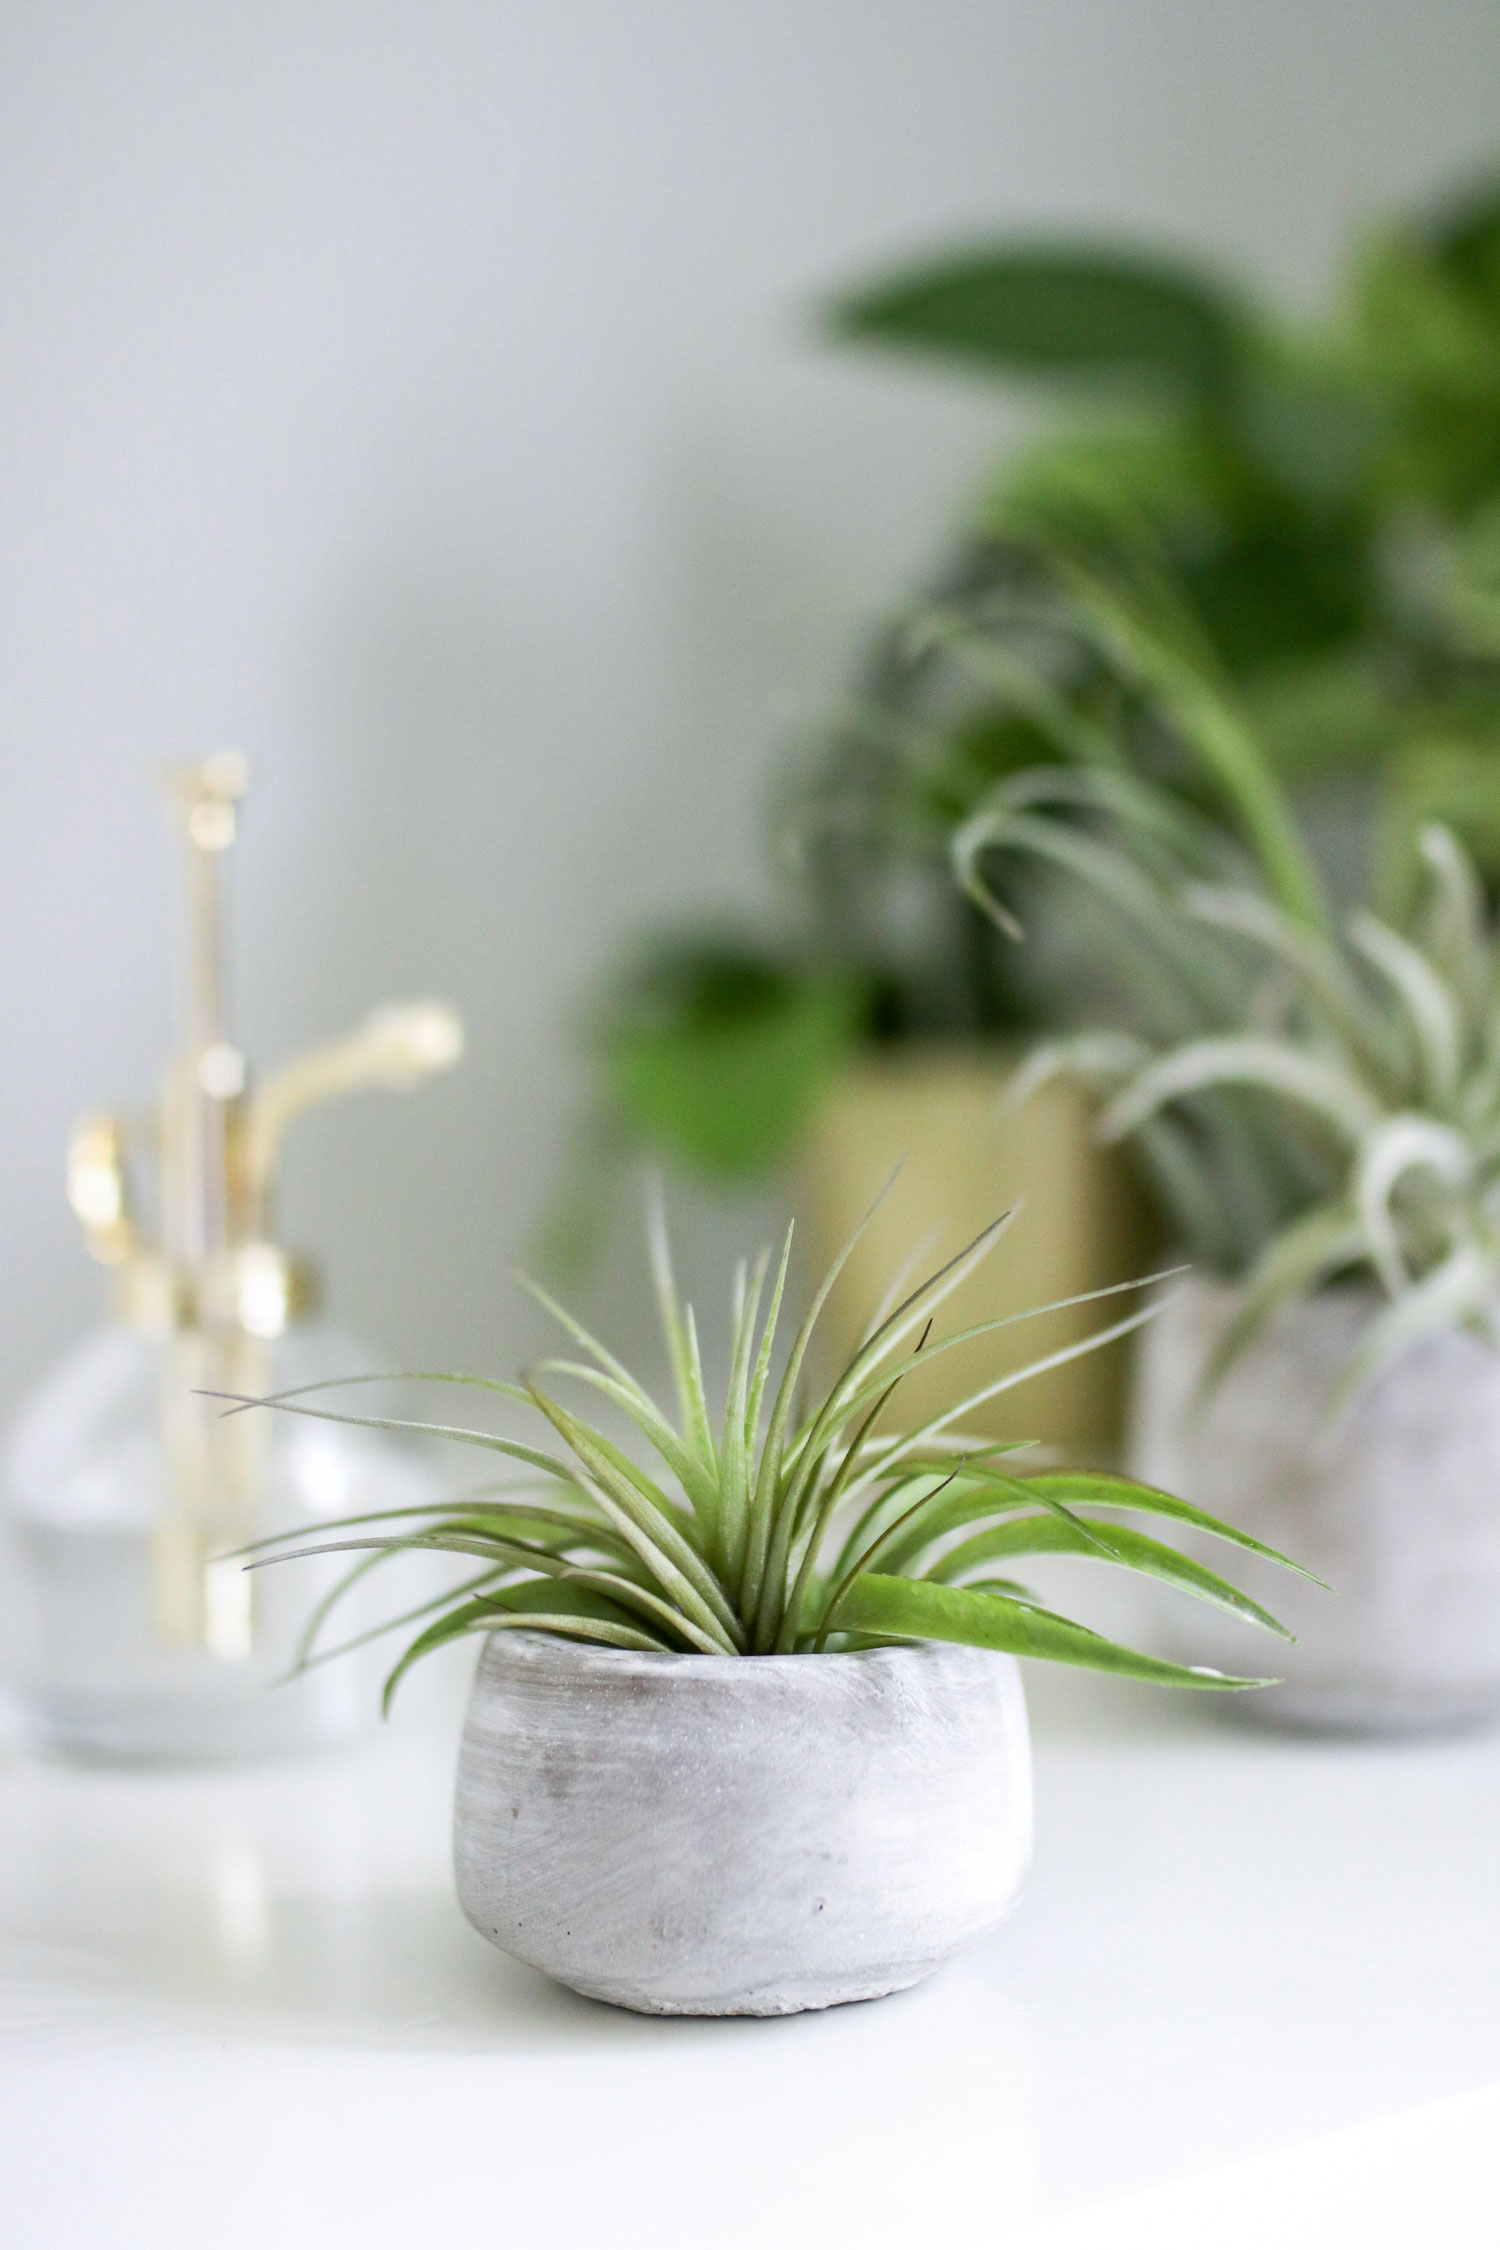 Containers for air plants